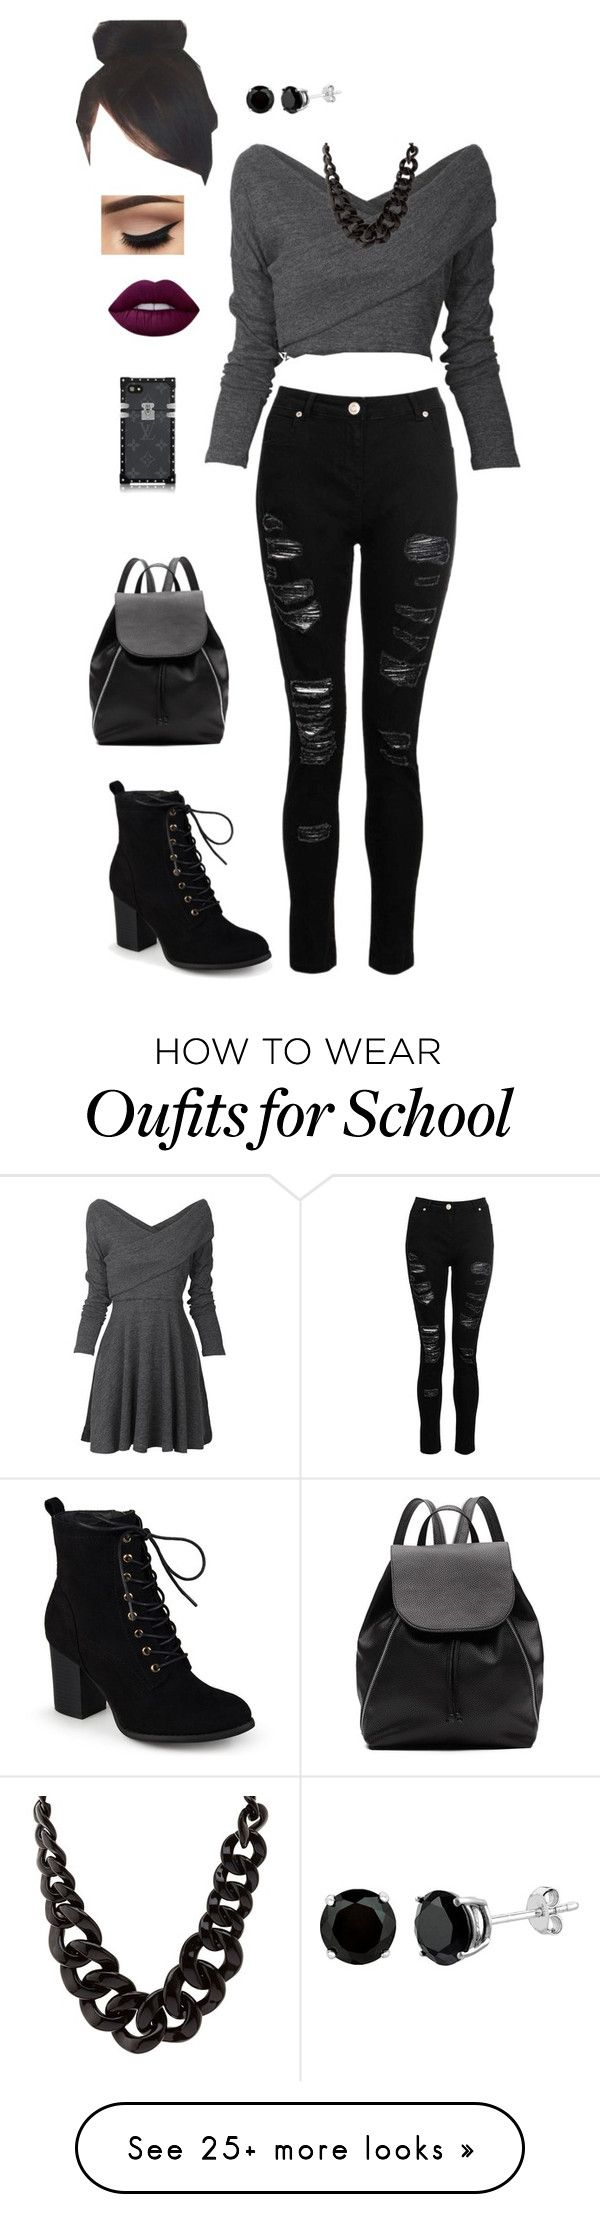 """Rebel high school"" by goddessofbacon on Polyvore featuring Dorothy Perkins, Journee Collection, Charlotte Russe, Lime Crime and Witchery"